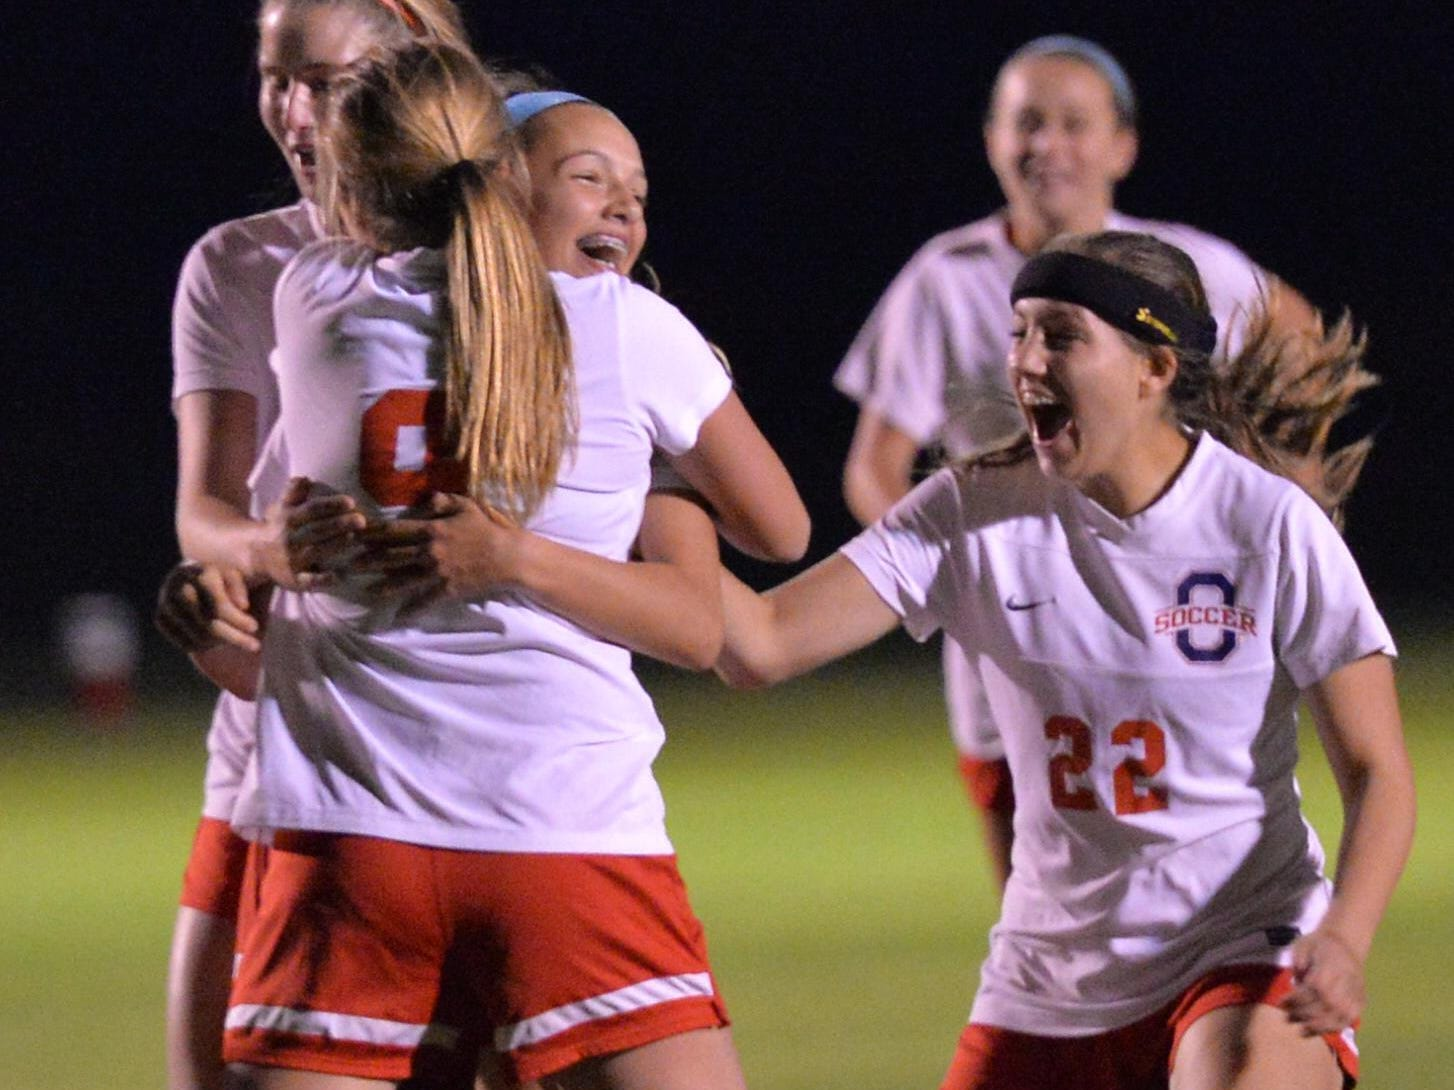 Oakland celebrates a score in the District 7-AAA championship. Oakland defeated Shelbyville 1-0 behind Abbey Peach's goal on Tuesday.